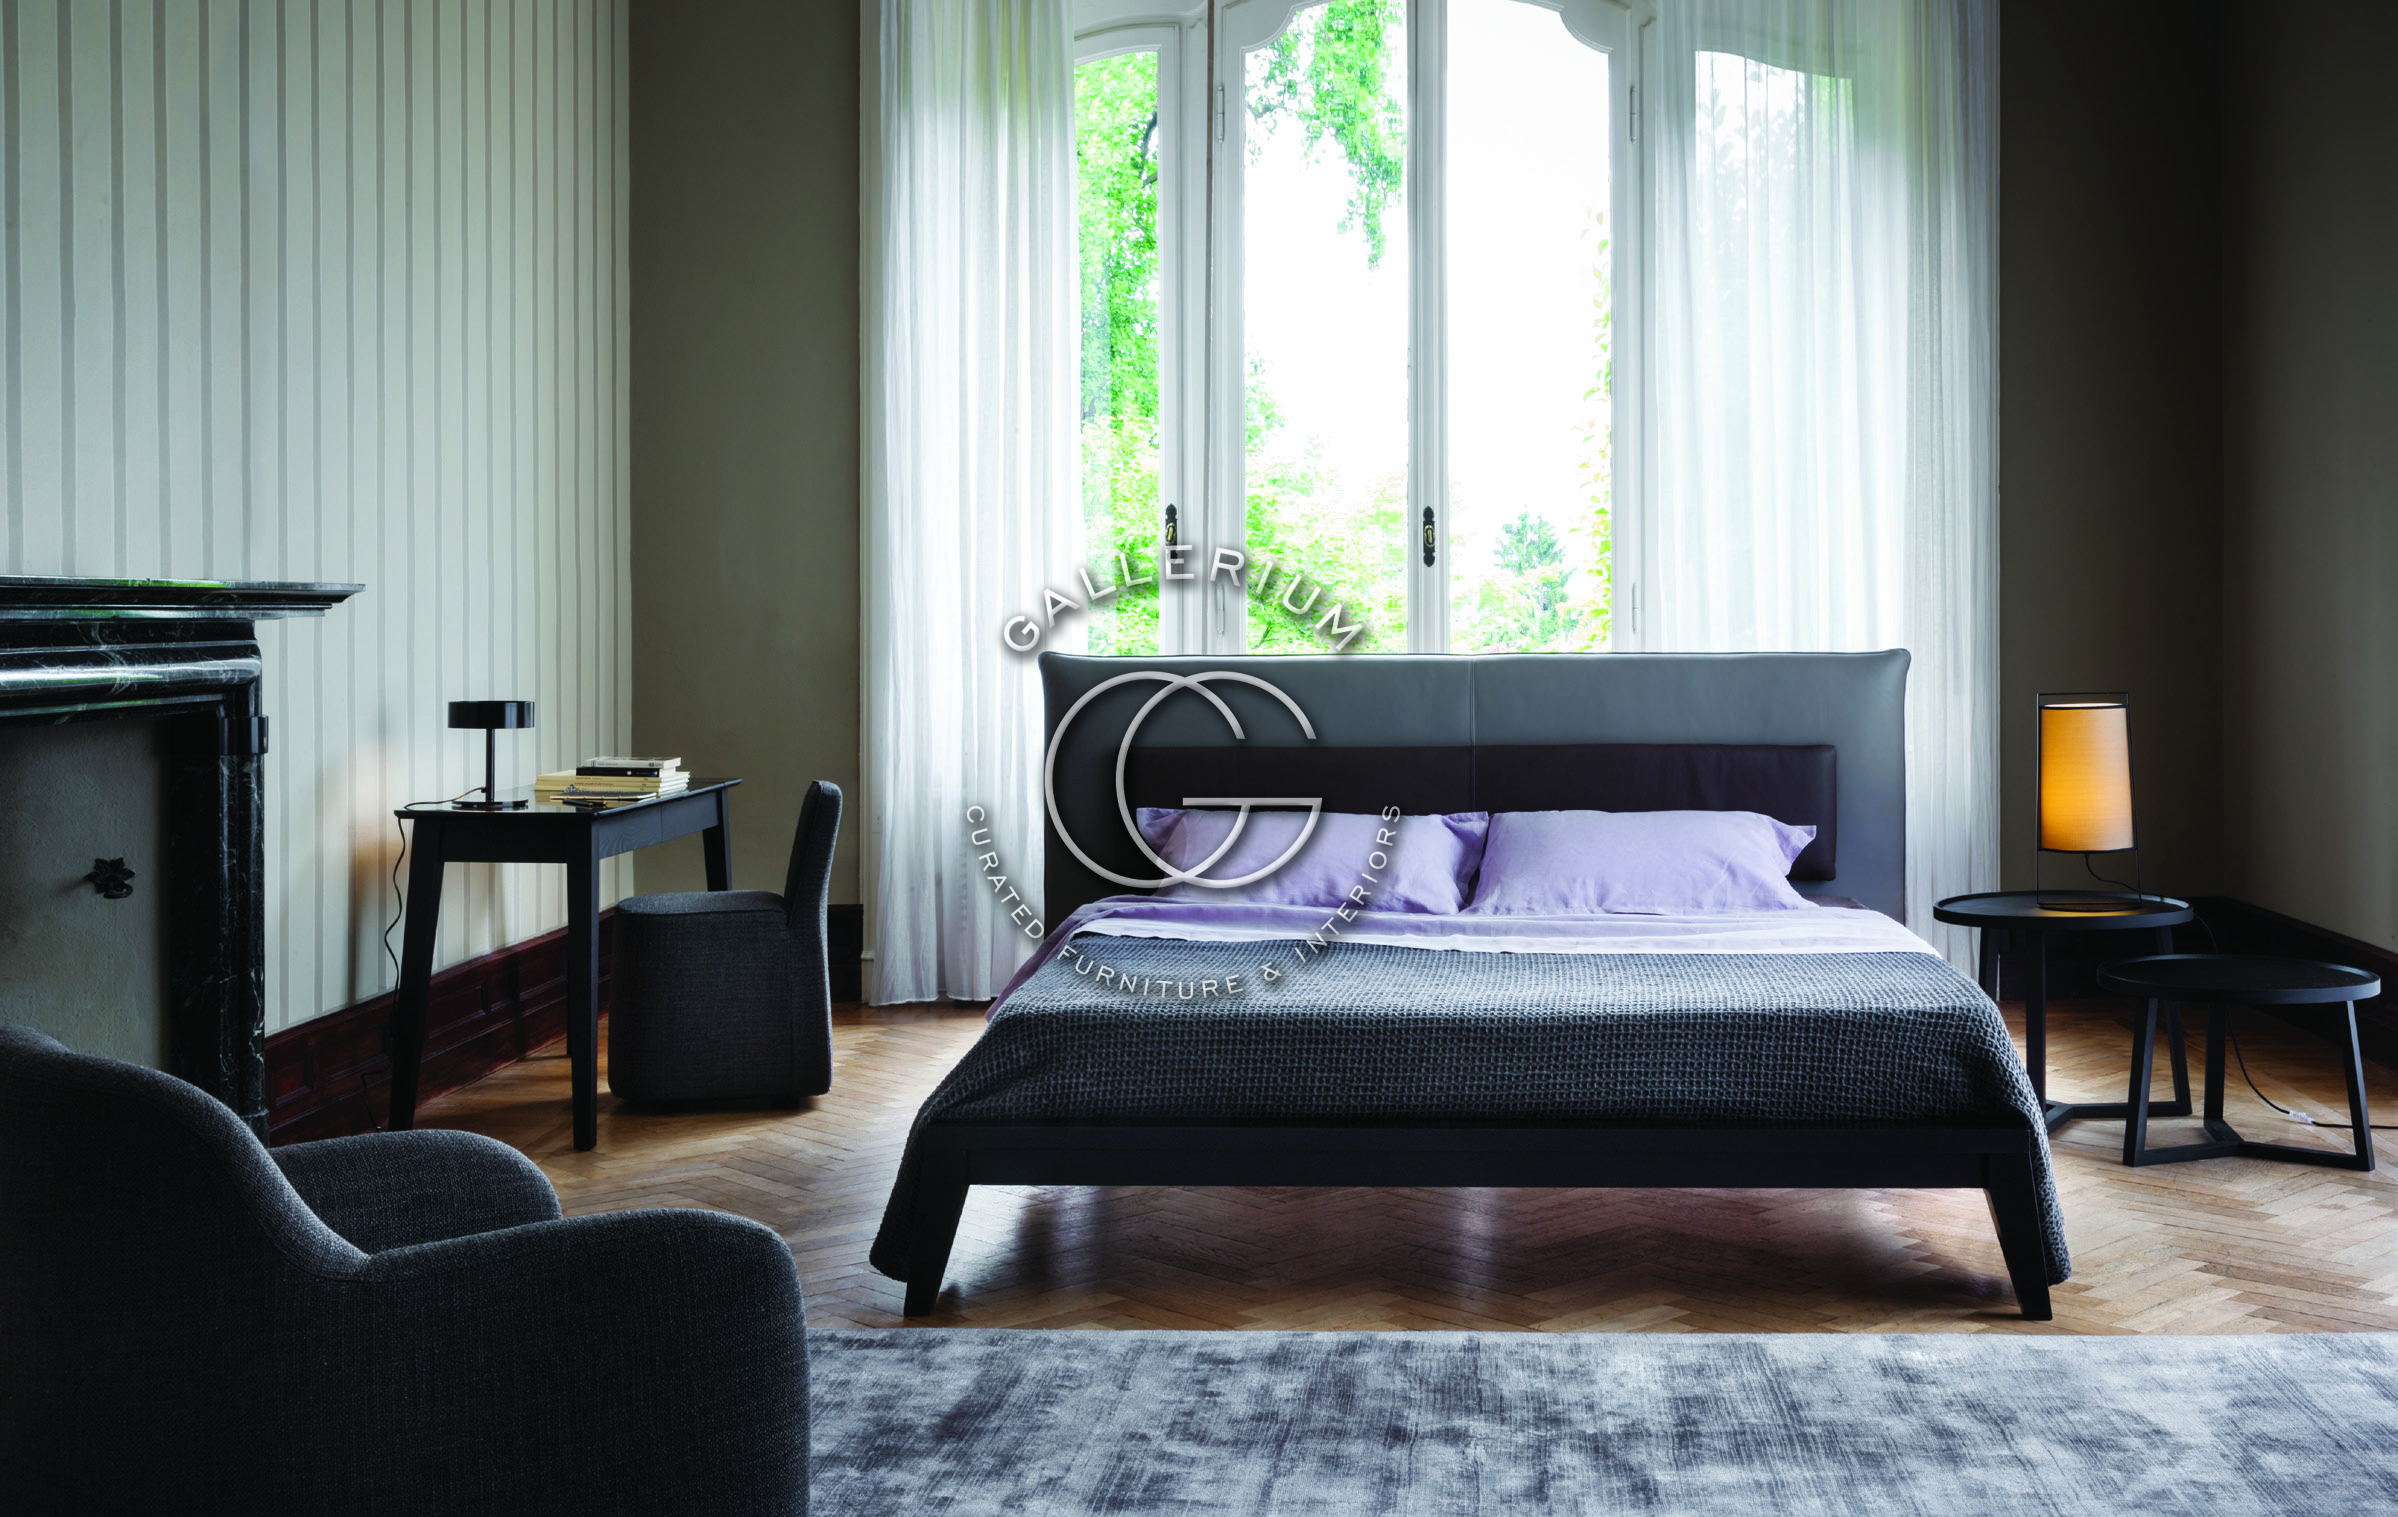 Pin by The Gallerium on Bedroom Italian bed